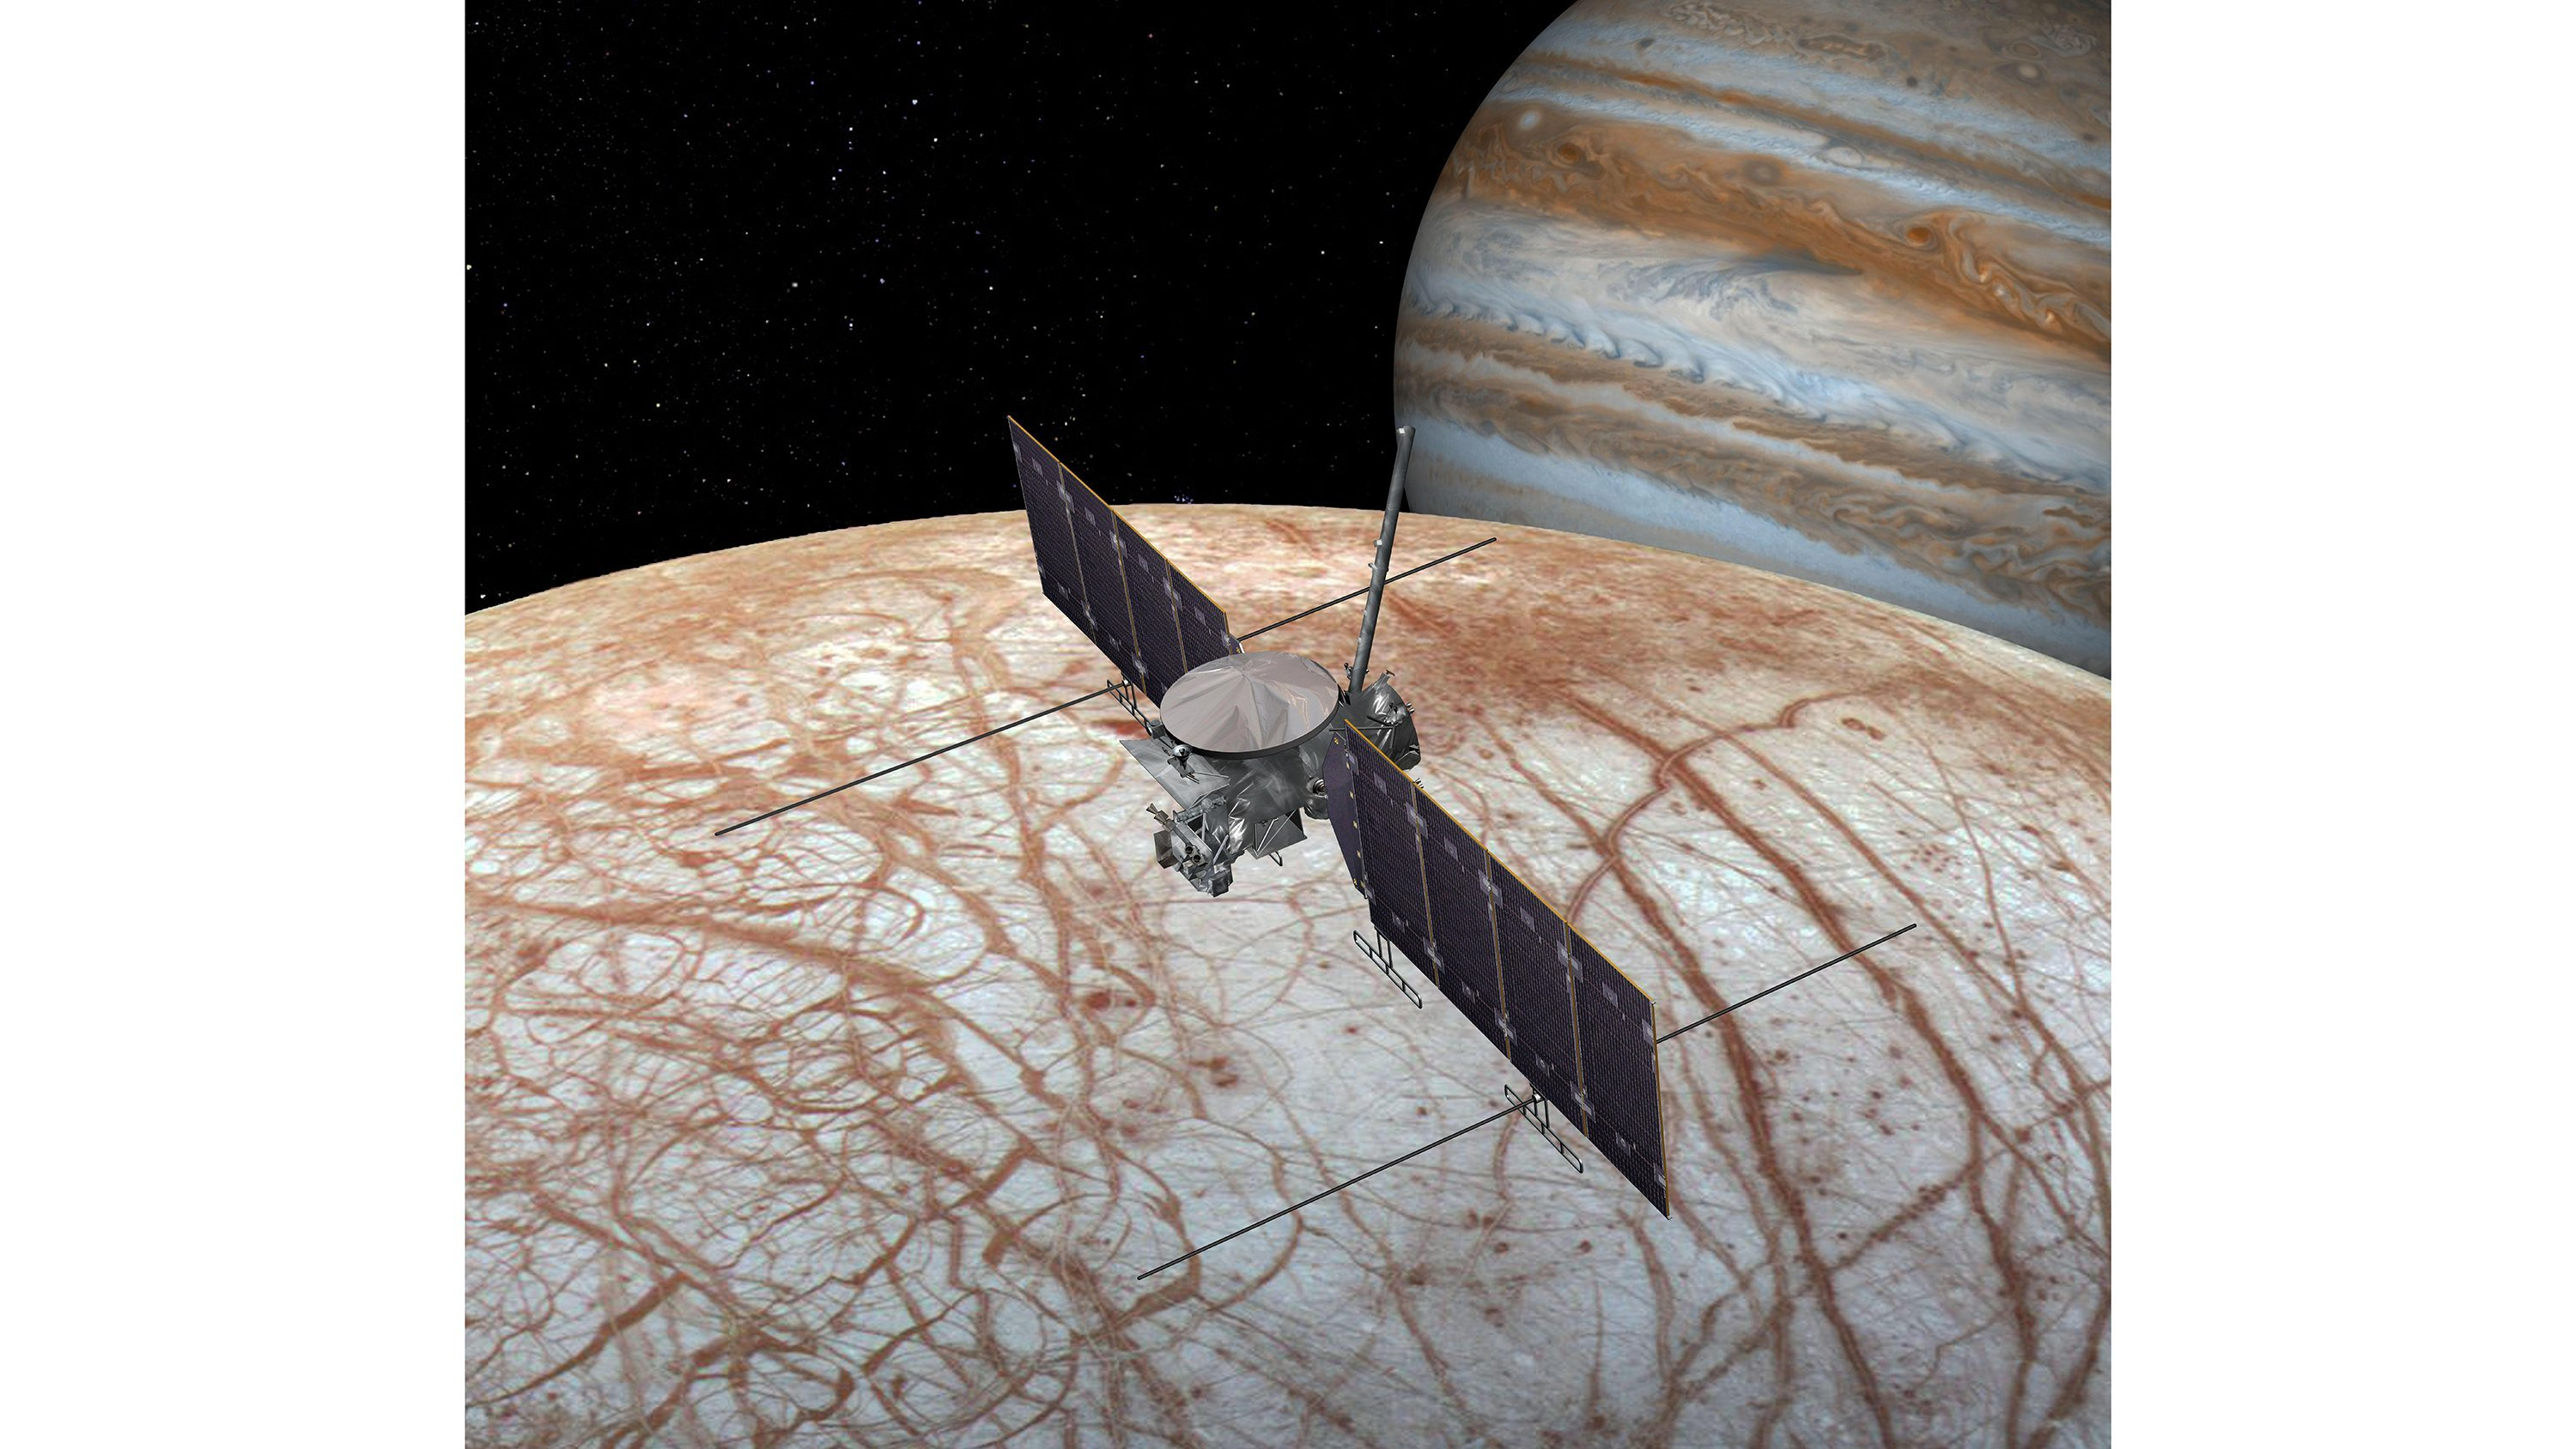 Water vapor detected on Jupiter's moon Europa, adding intrigue to potential for life